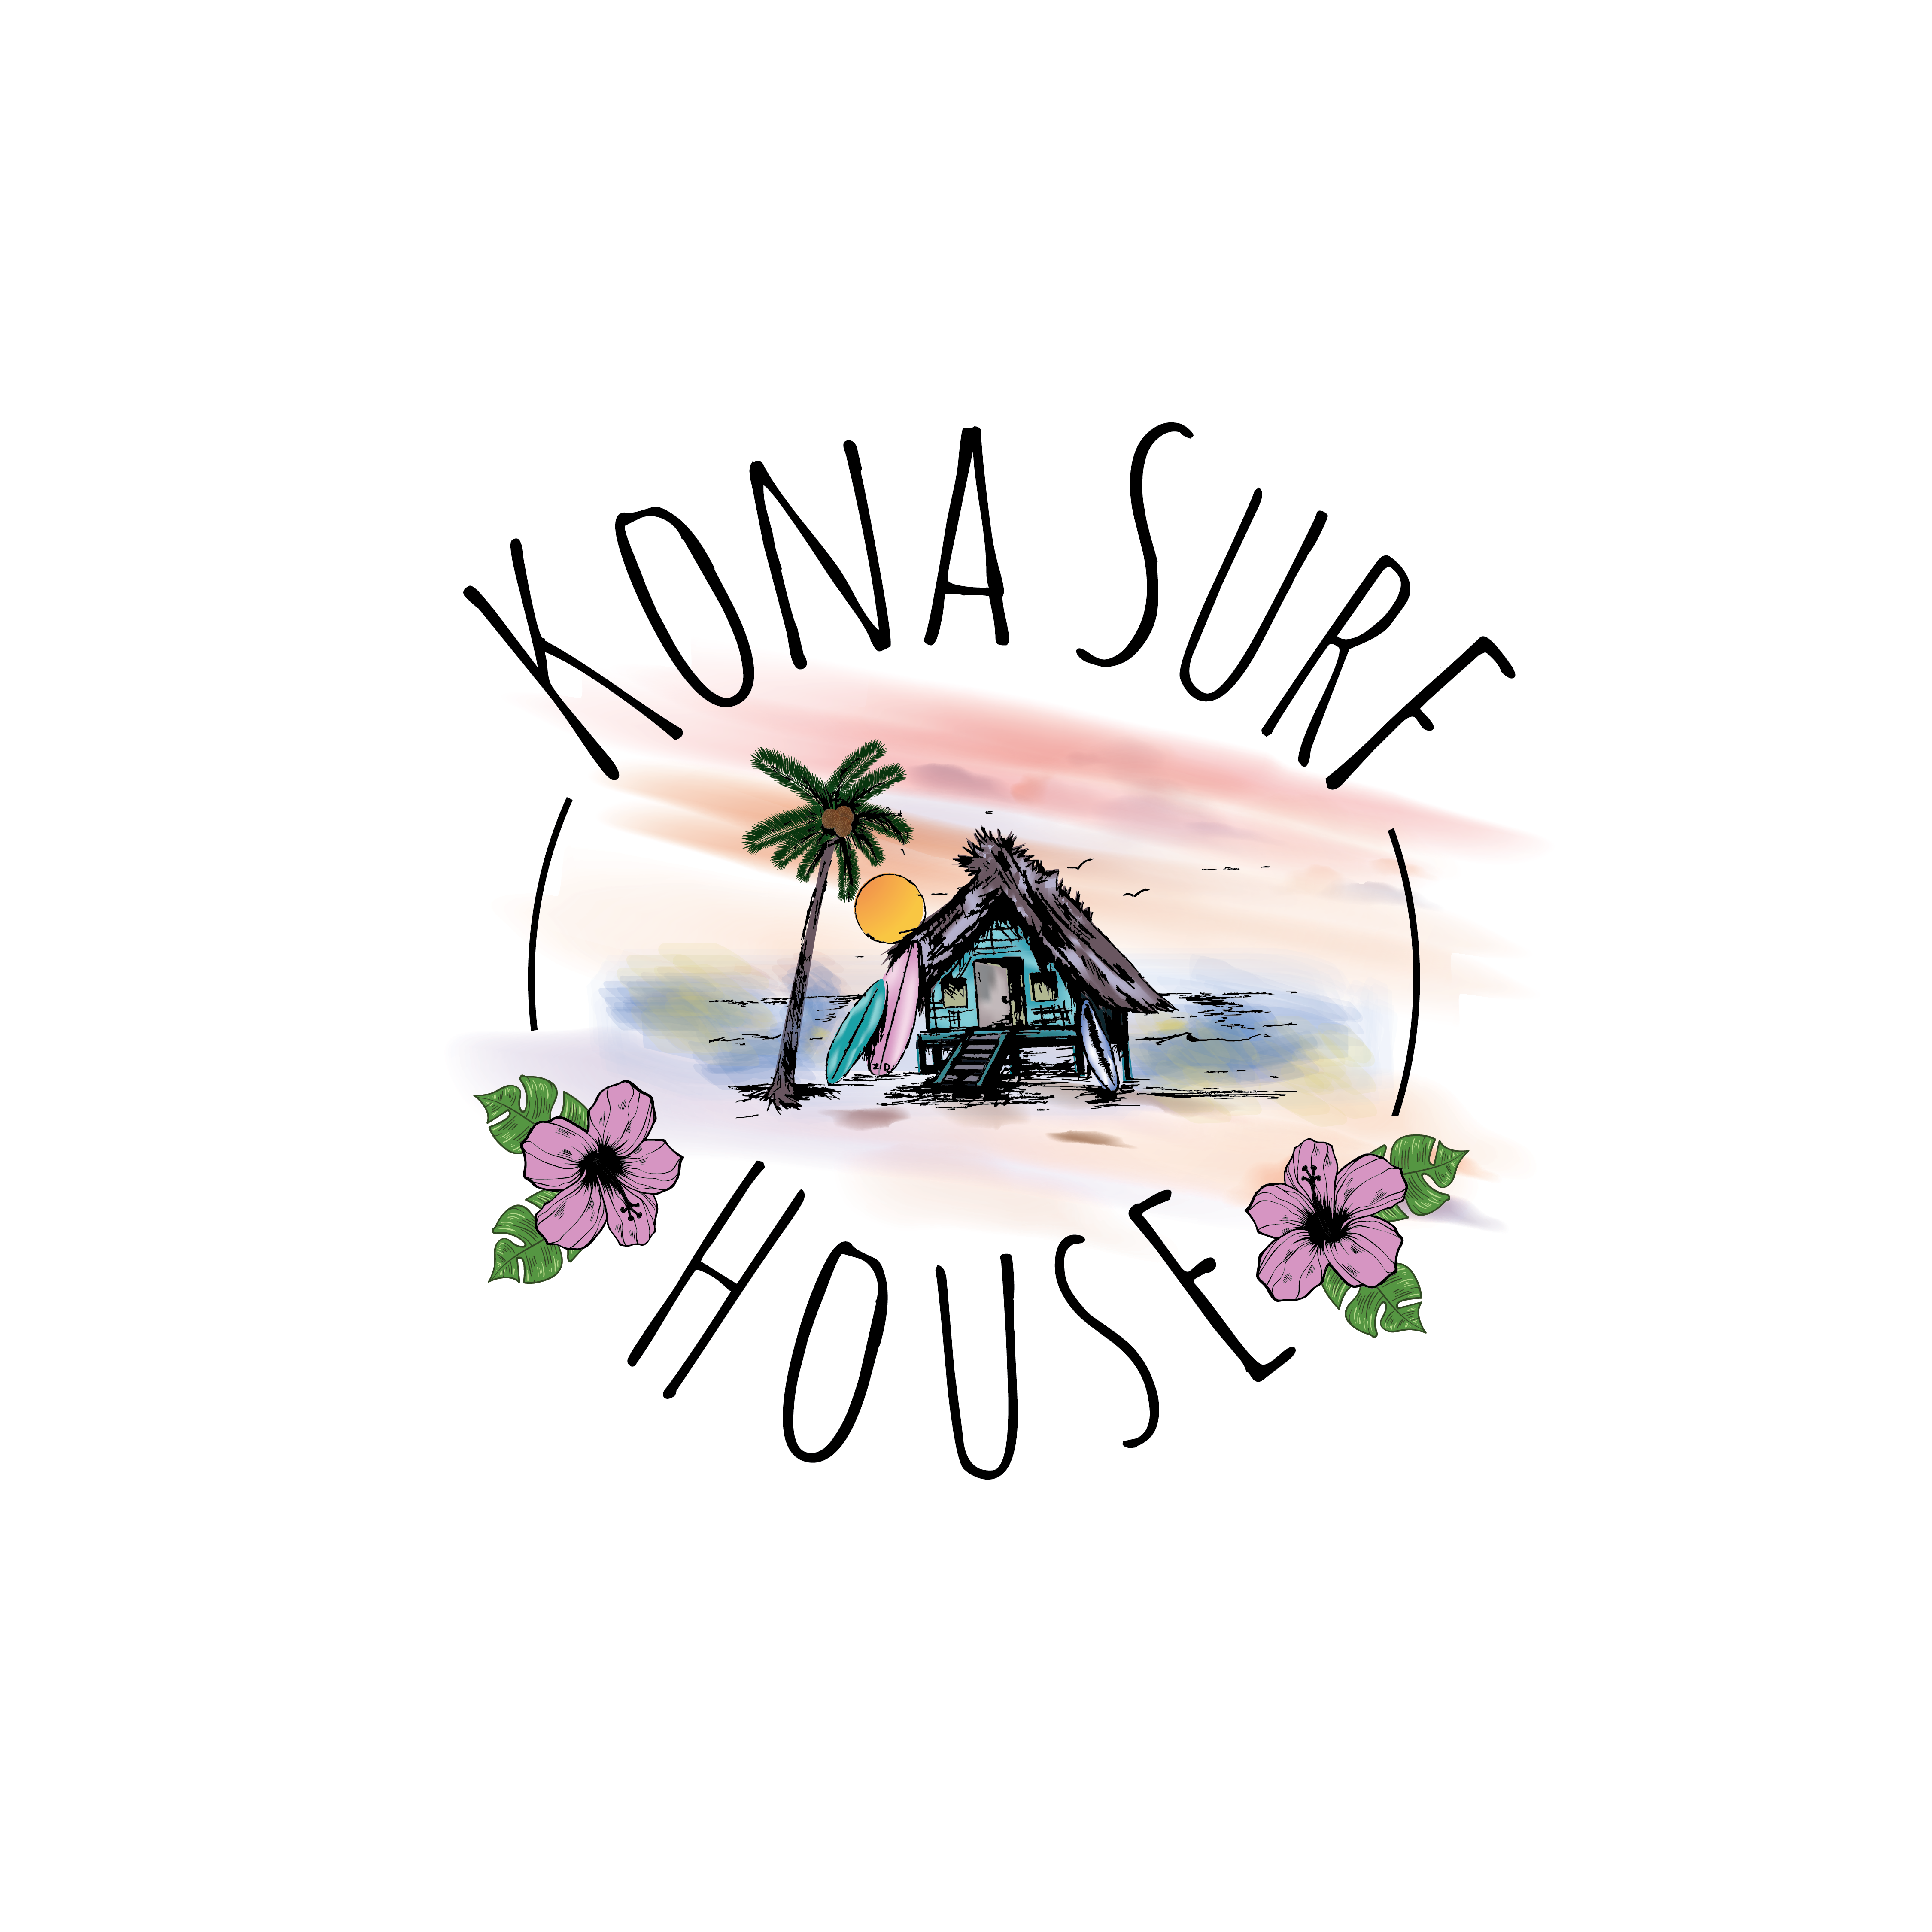 kona-surf-house